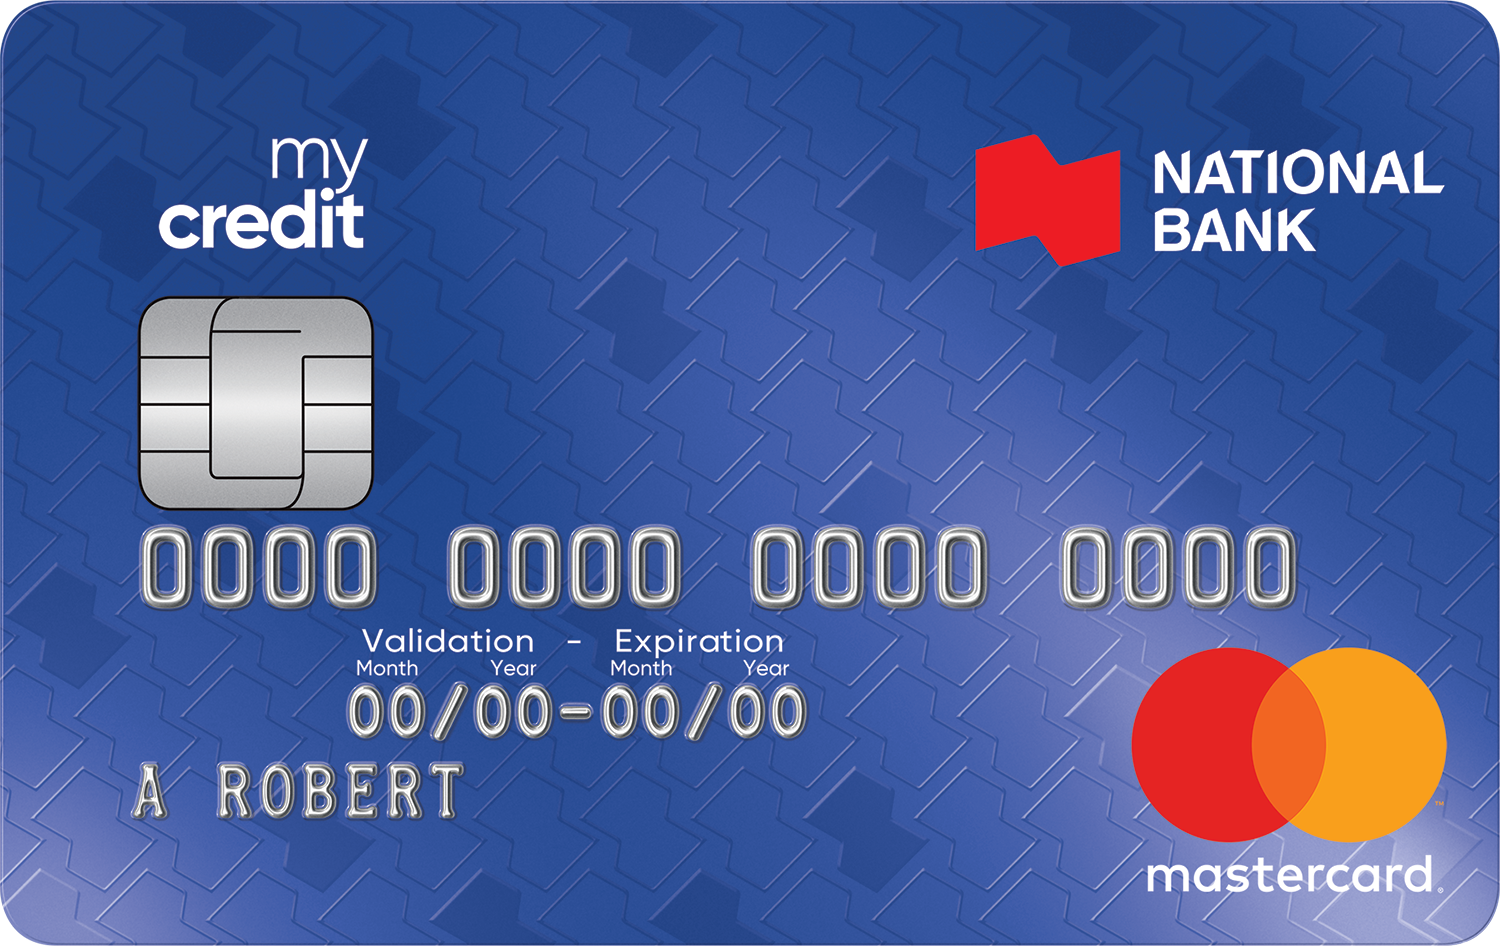 National Bank Mycredit Mastercard®